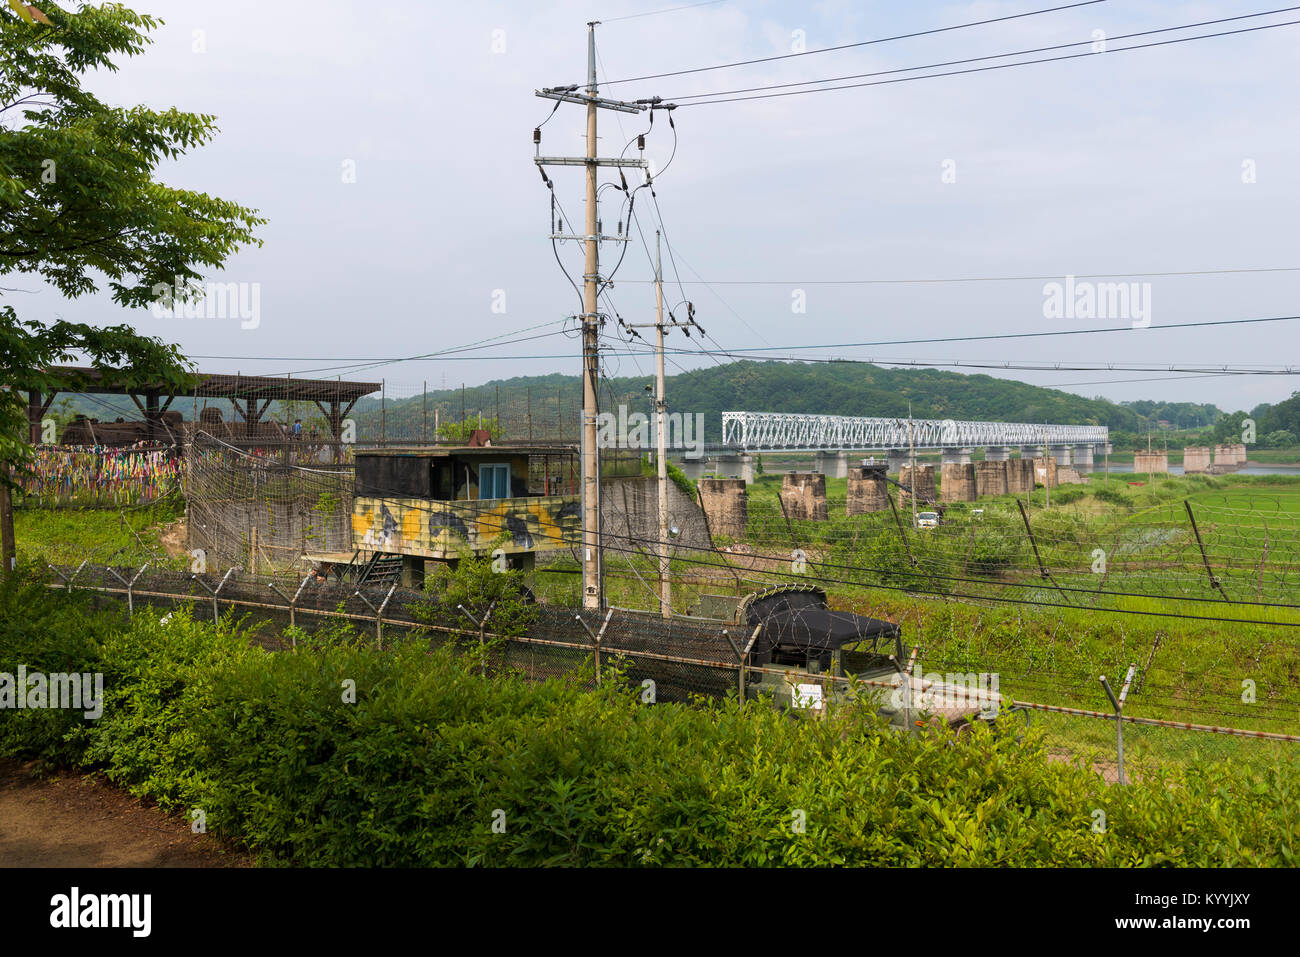 Looking into North Korea at the DMZ, Korean Demilitarized Zone, from South Korea - Stock Image